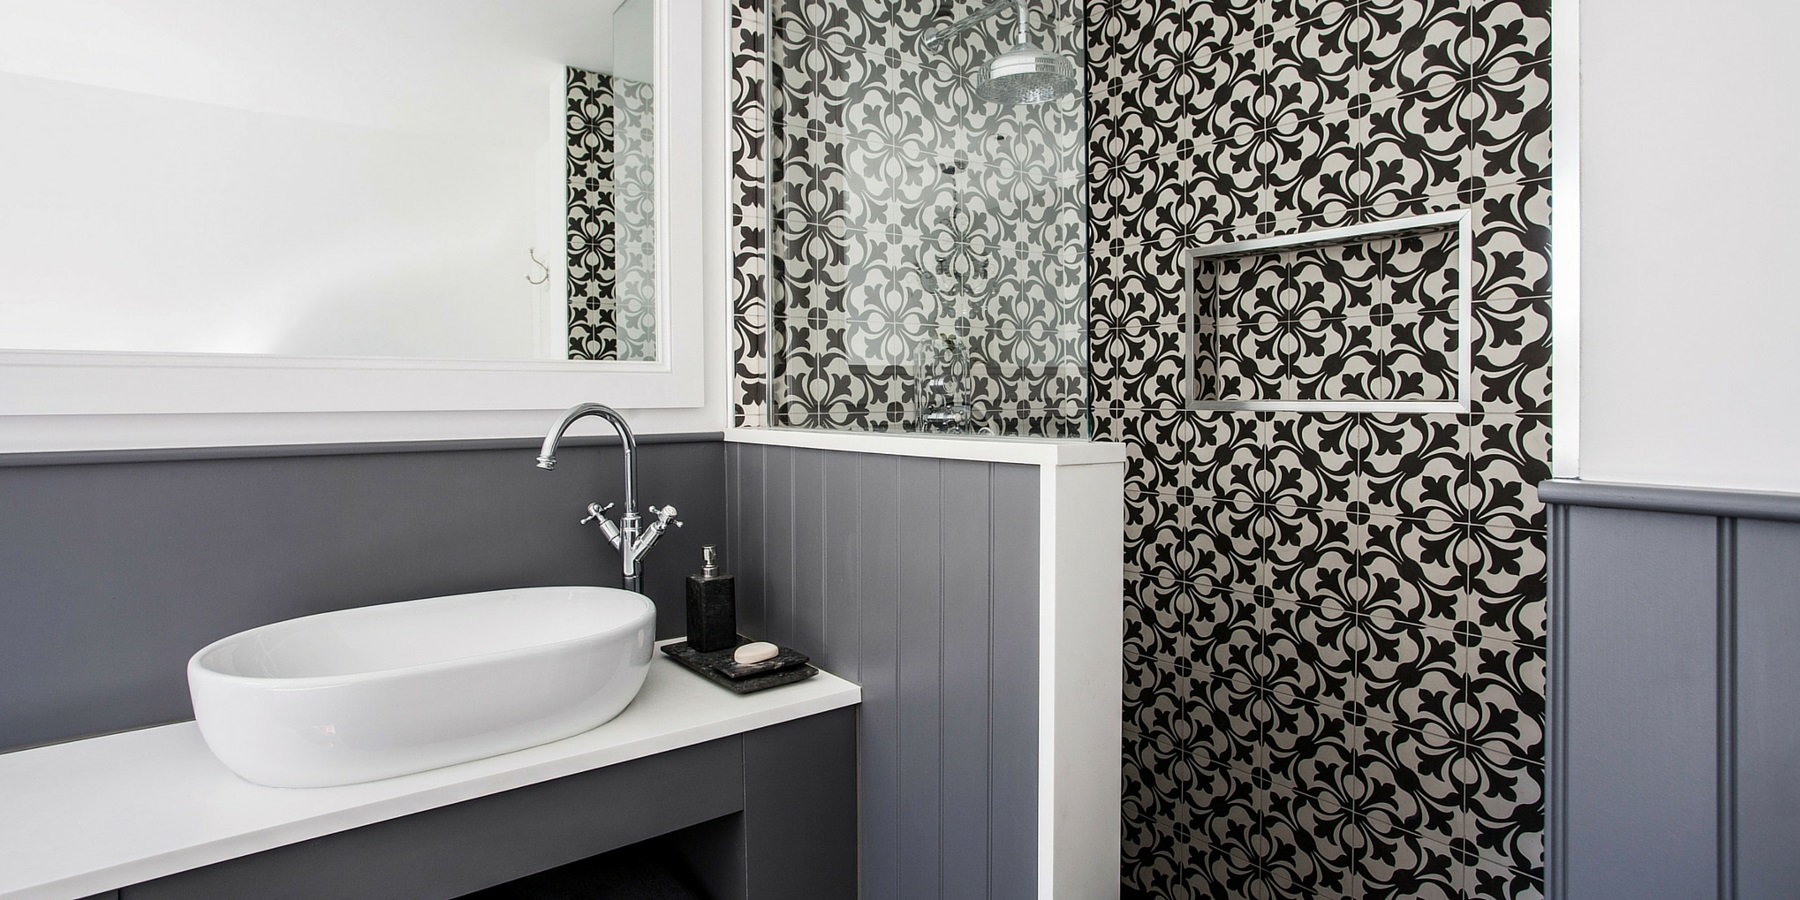 Burlanes Interiors - Contemporary family bathroom design